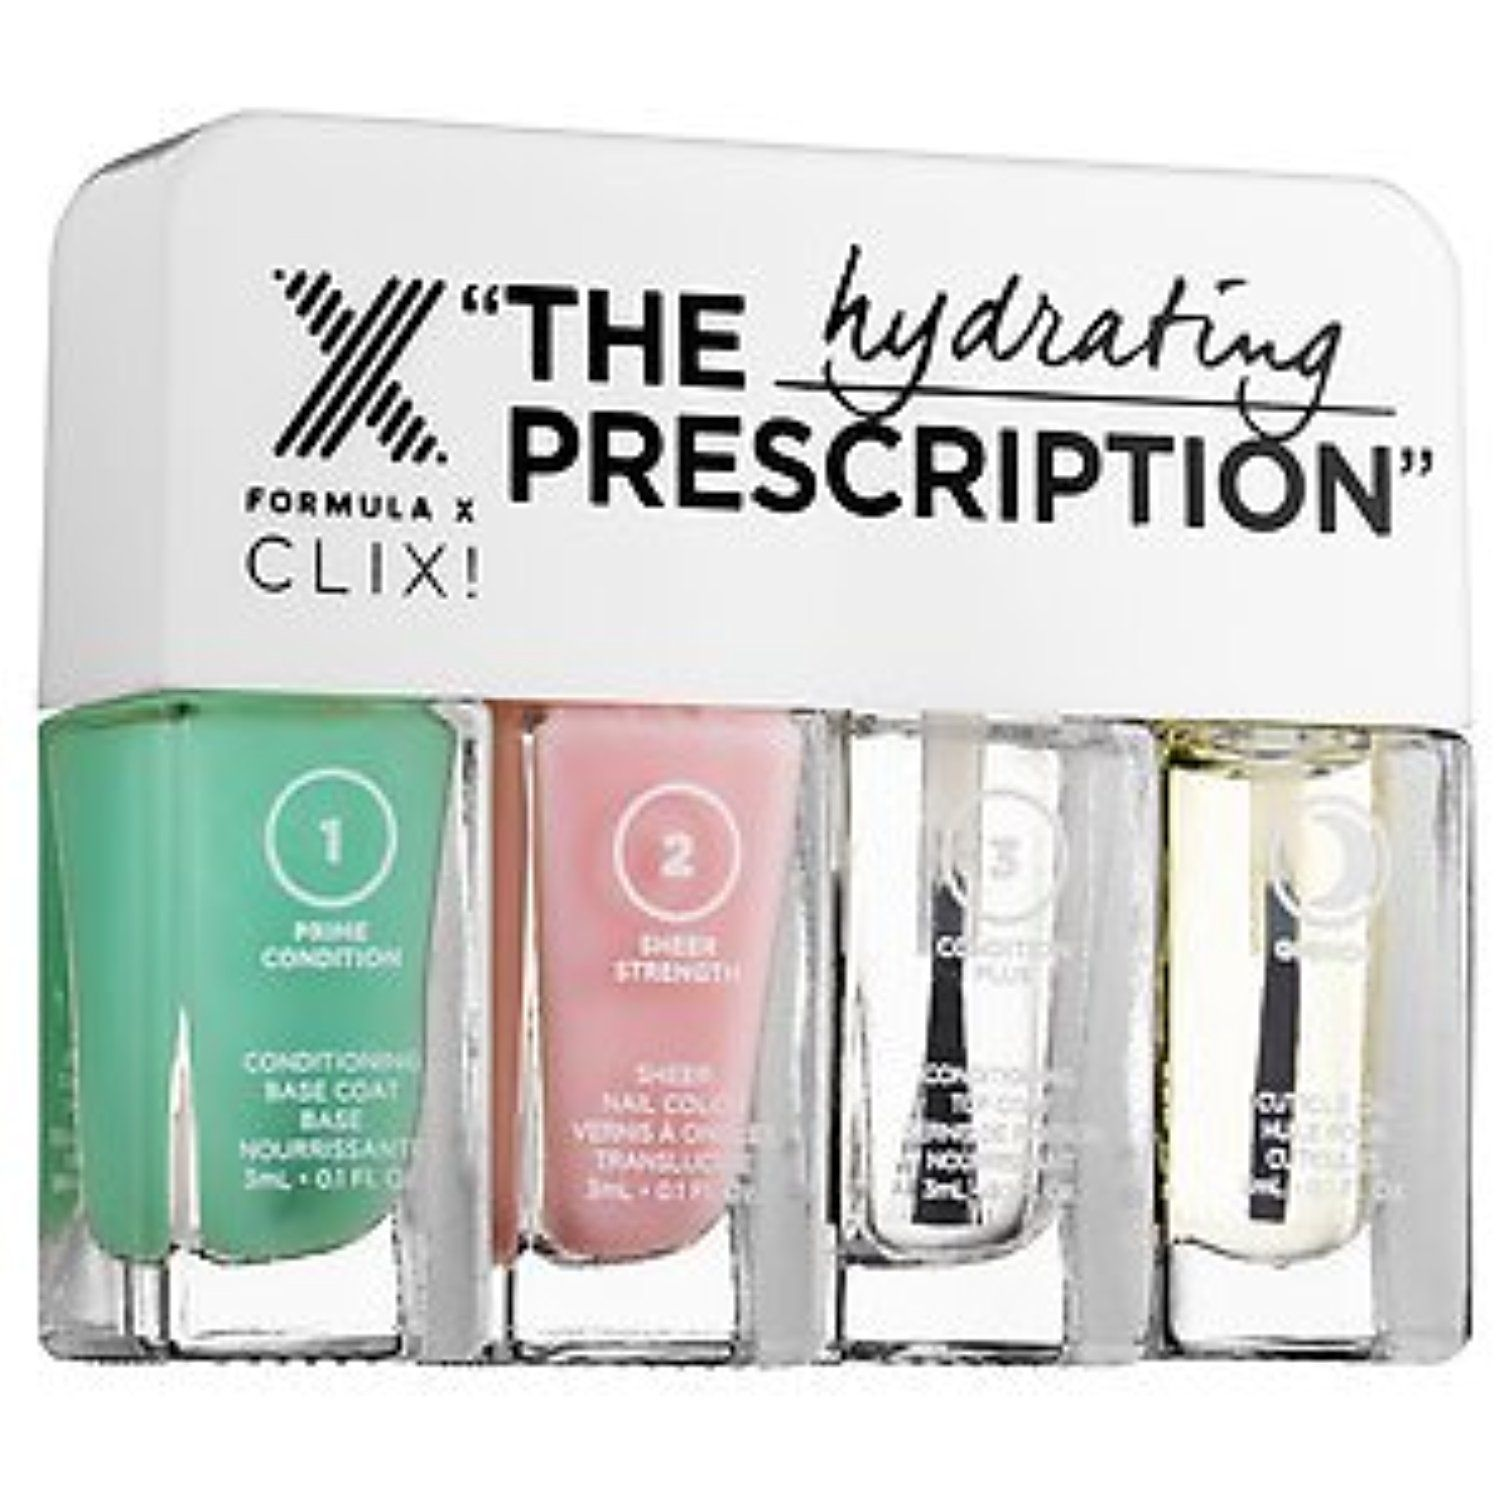 Formula X The Prescription: Hydrating (For Dry or Peeling Nails ...